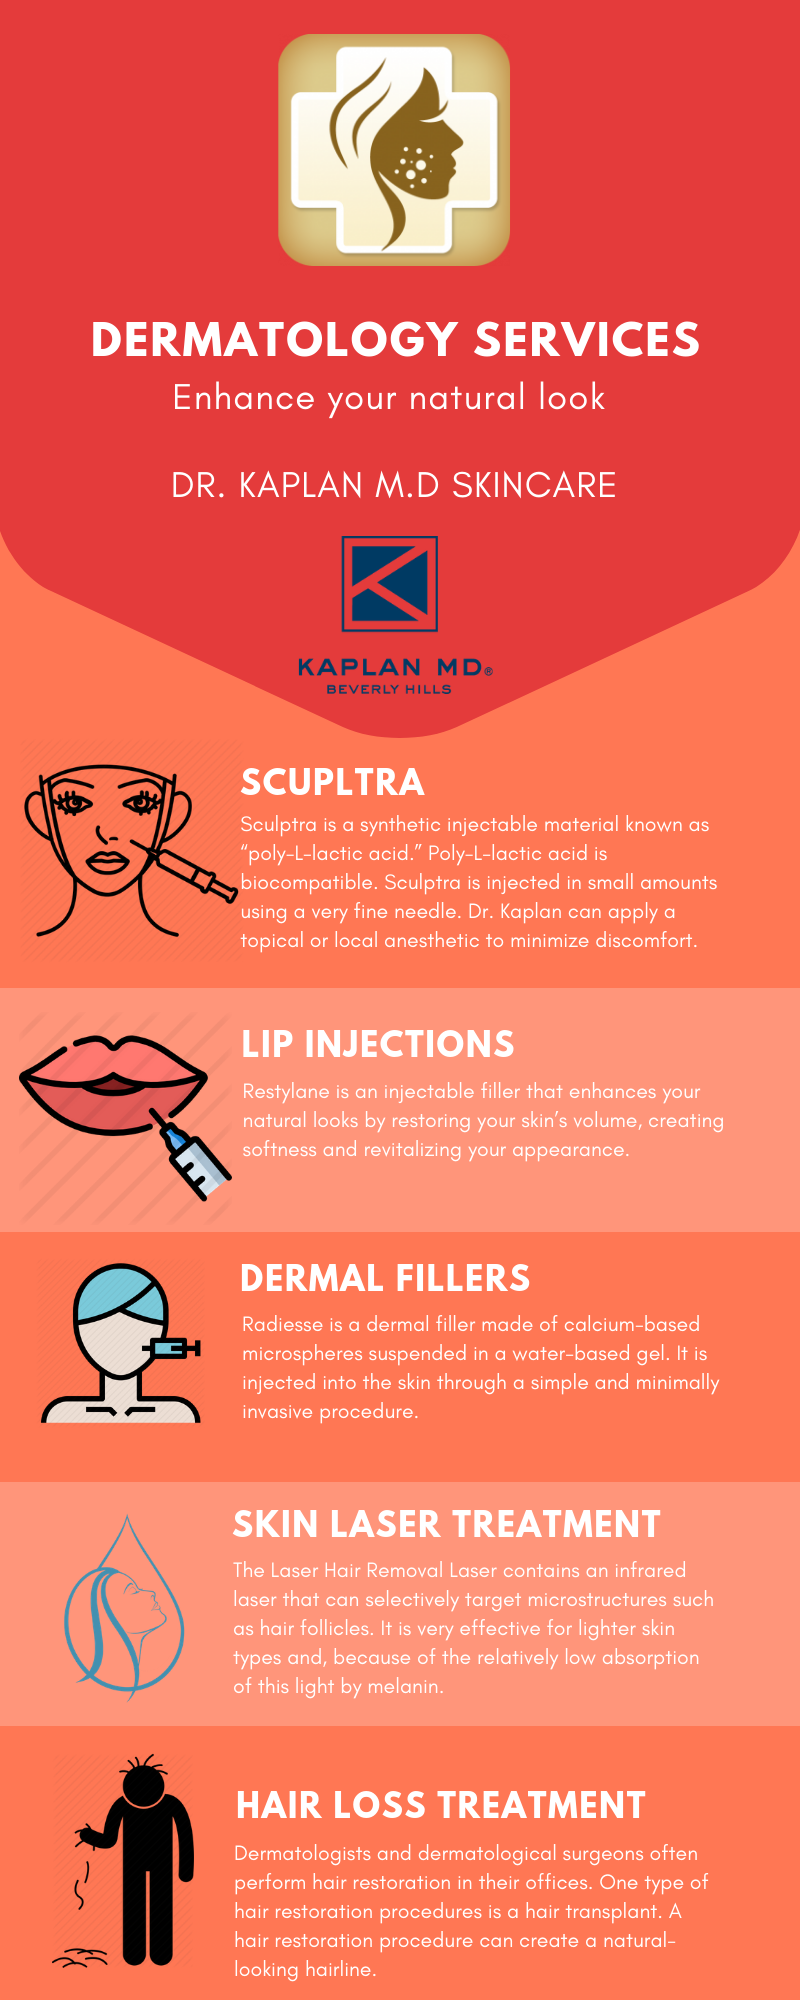 Dr  Kaplan M D is one of the best dermatologists in Los